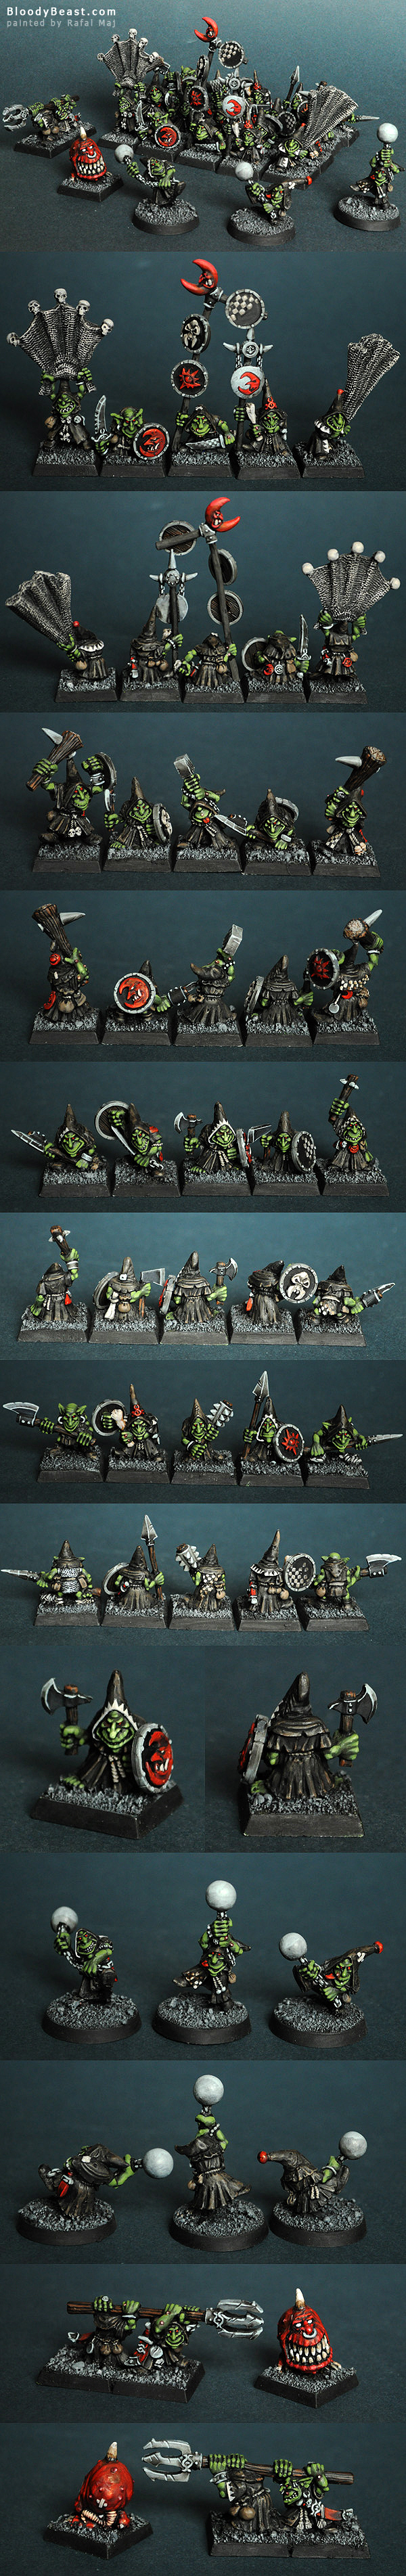 Night Goblins and Squig painted by Rafal Maj (BloodyBeast.com)